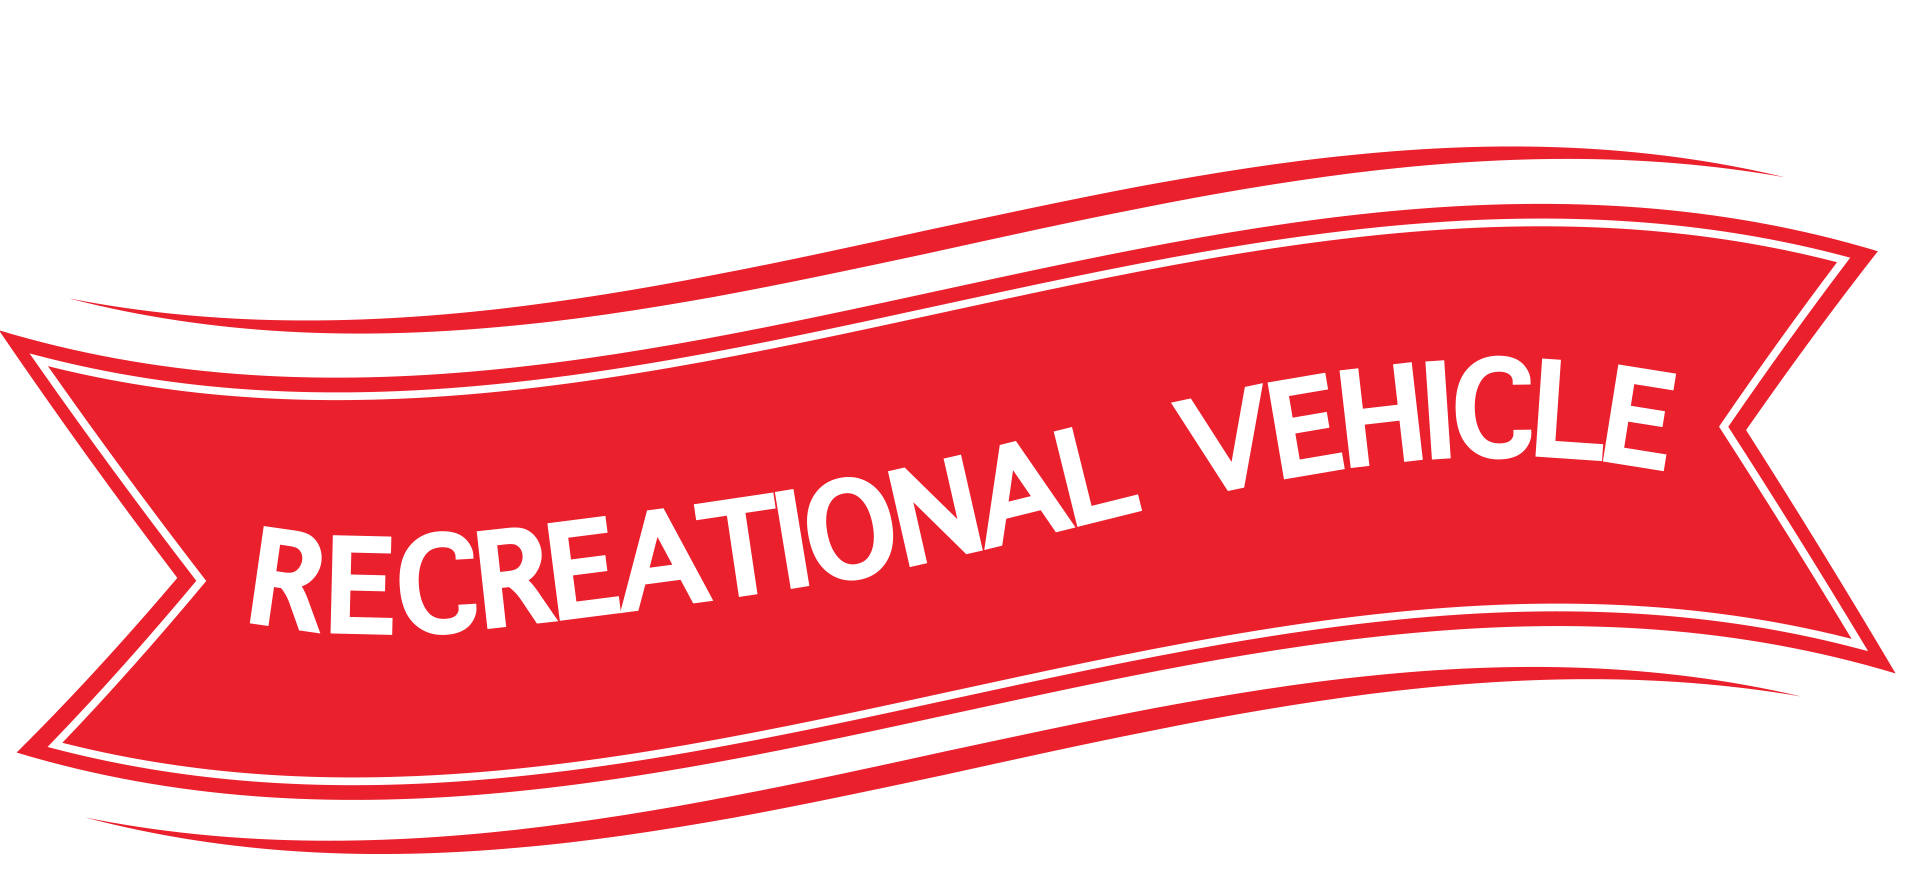 what does rv stand for